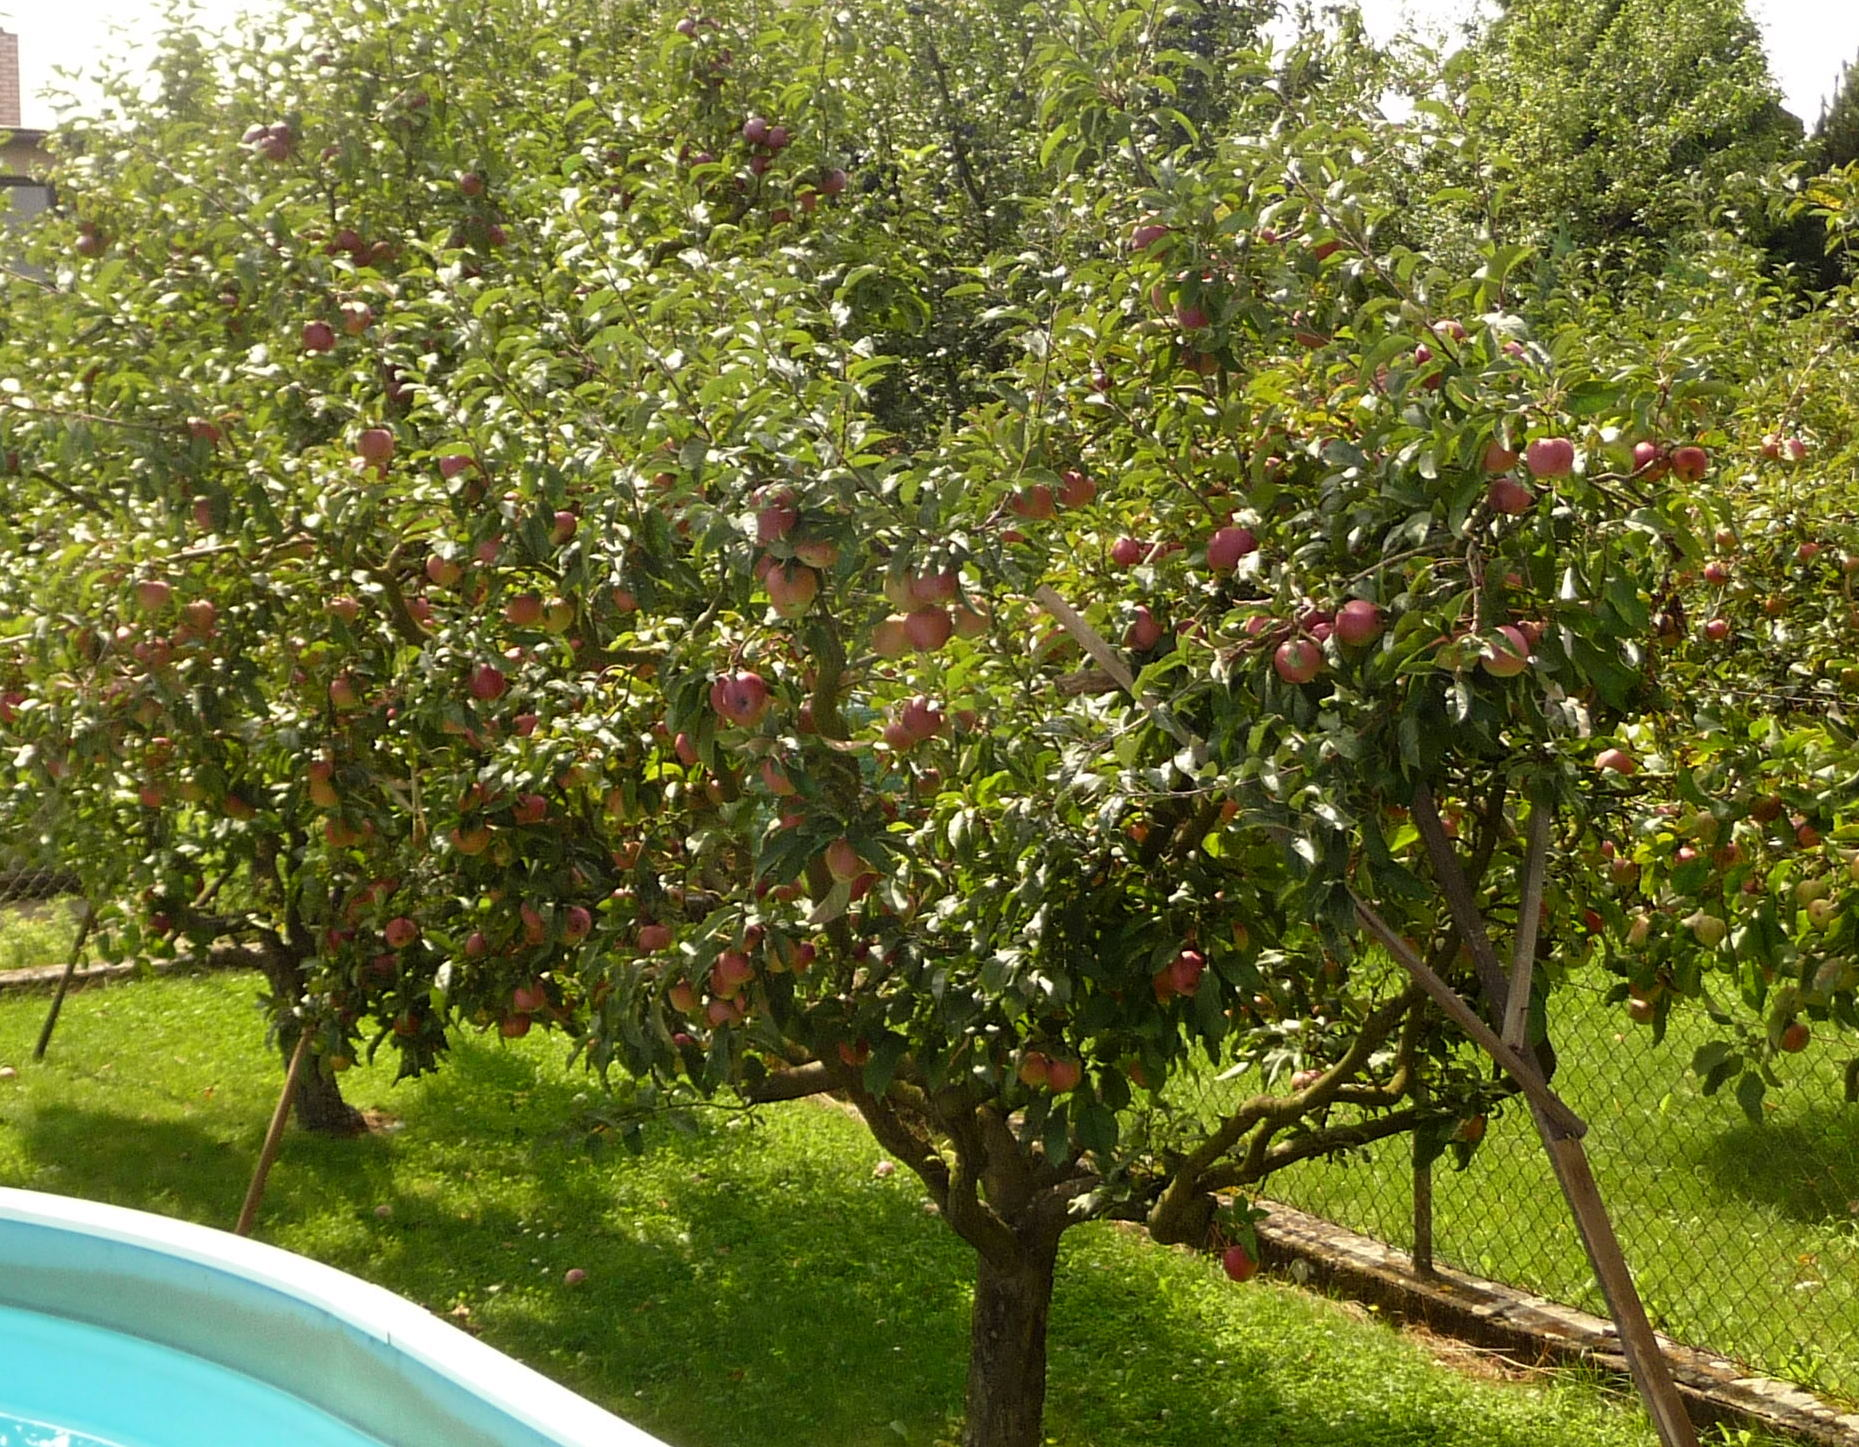 File:Apple tree, Fryšták (3).jpg - Wikimedia Commons